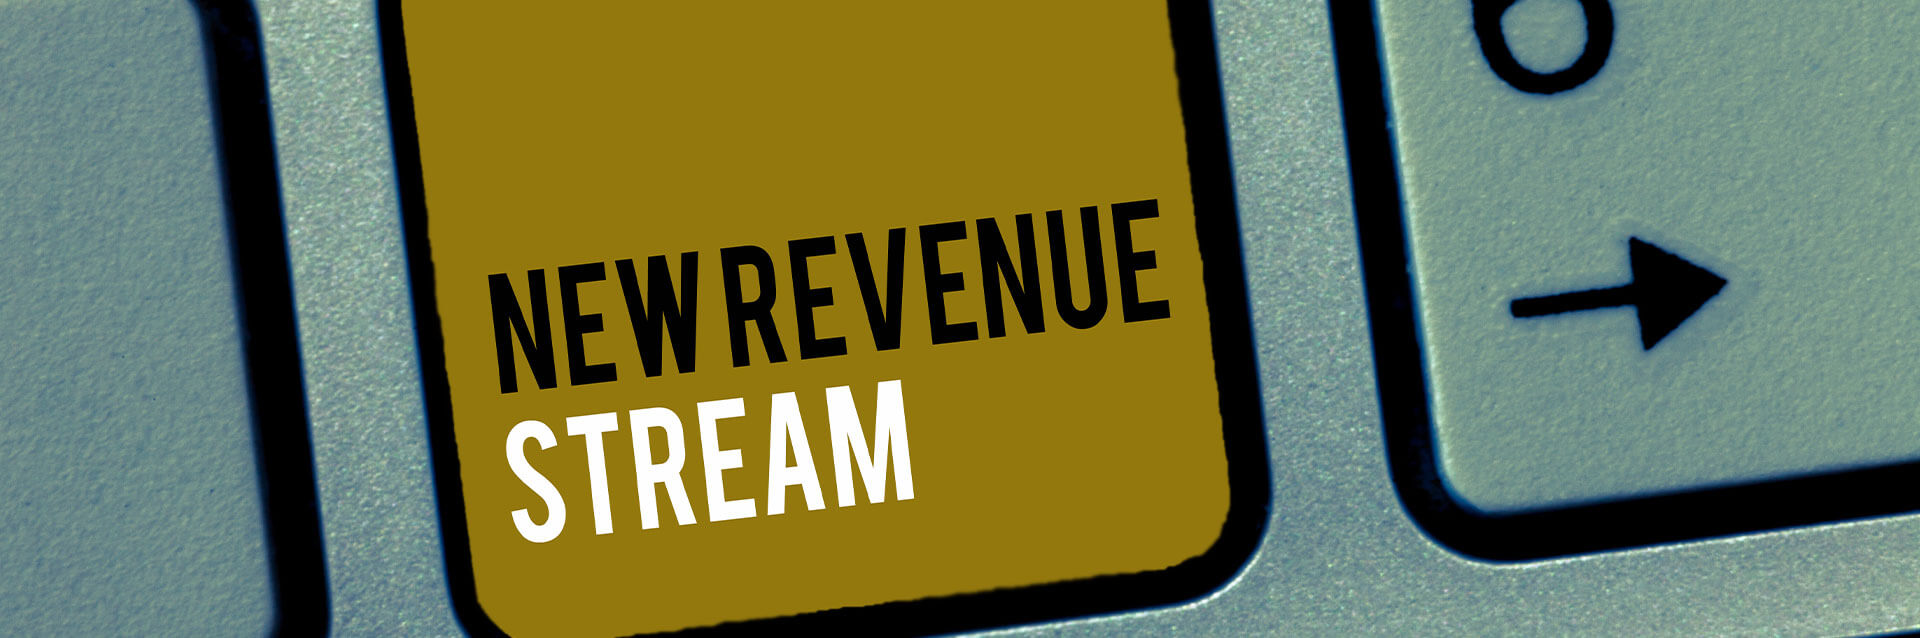 New-revenue-stream